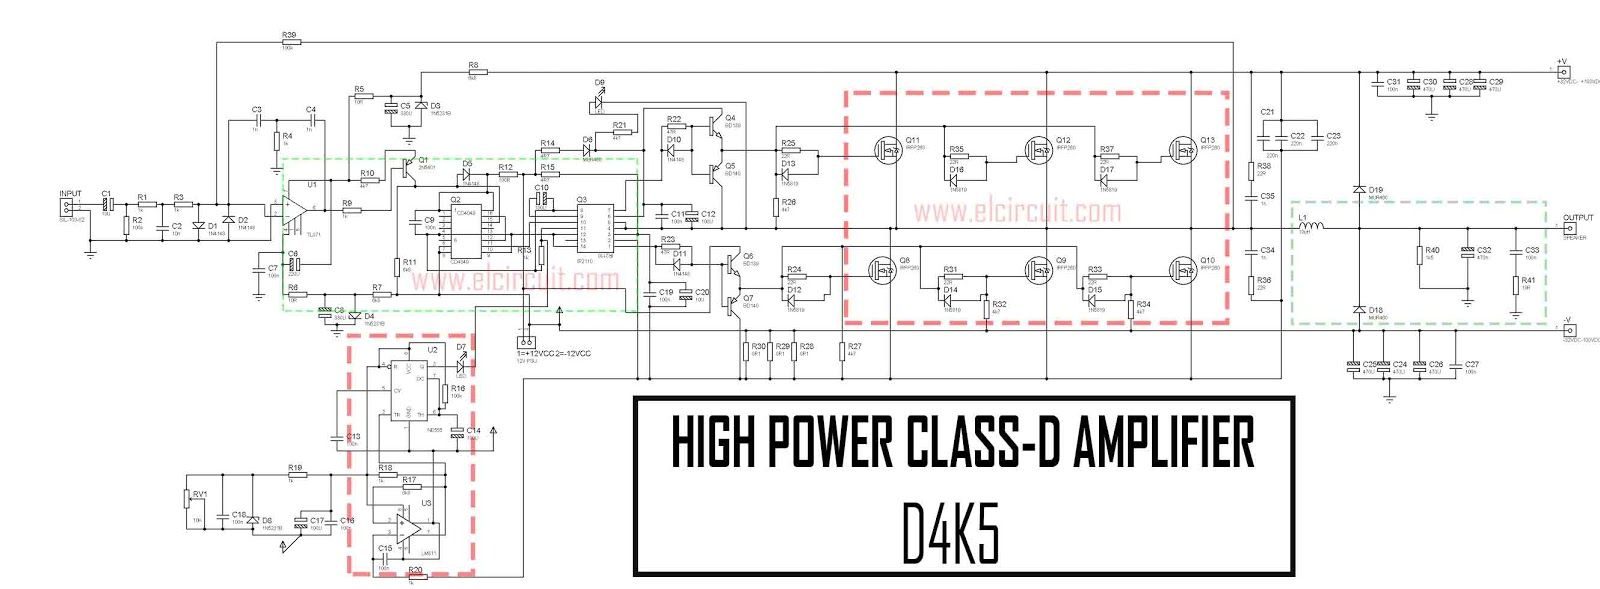 hight resolution of high power lifier circuit diagram besides h bridge inverter circuit high power class d amplifier d4k5